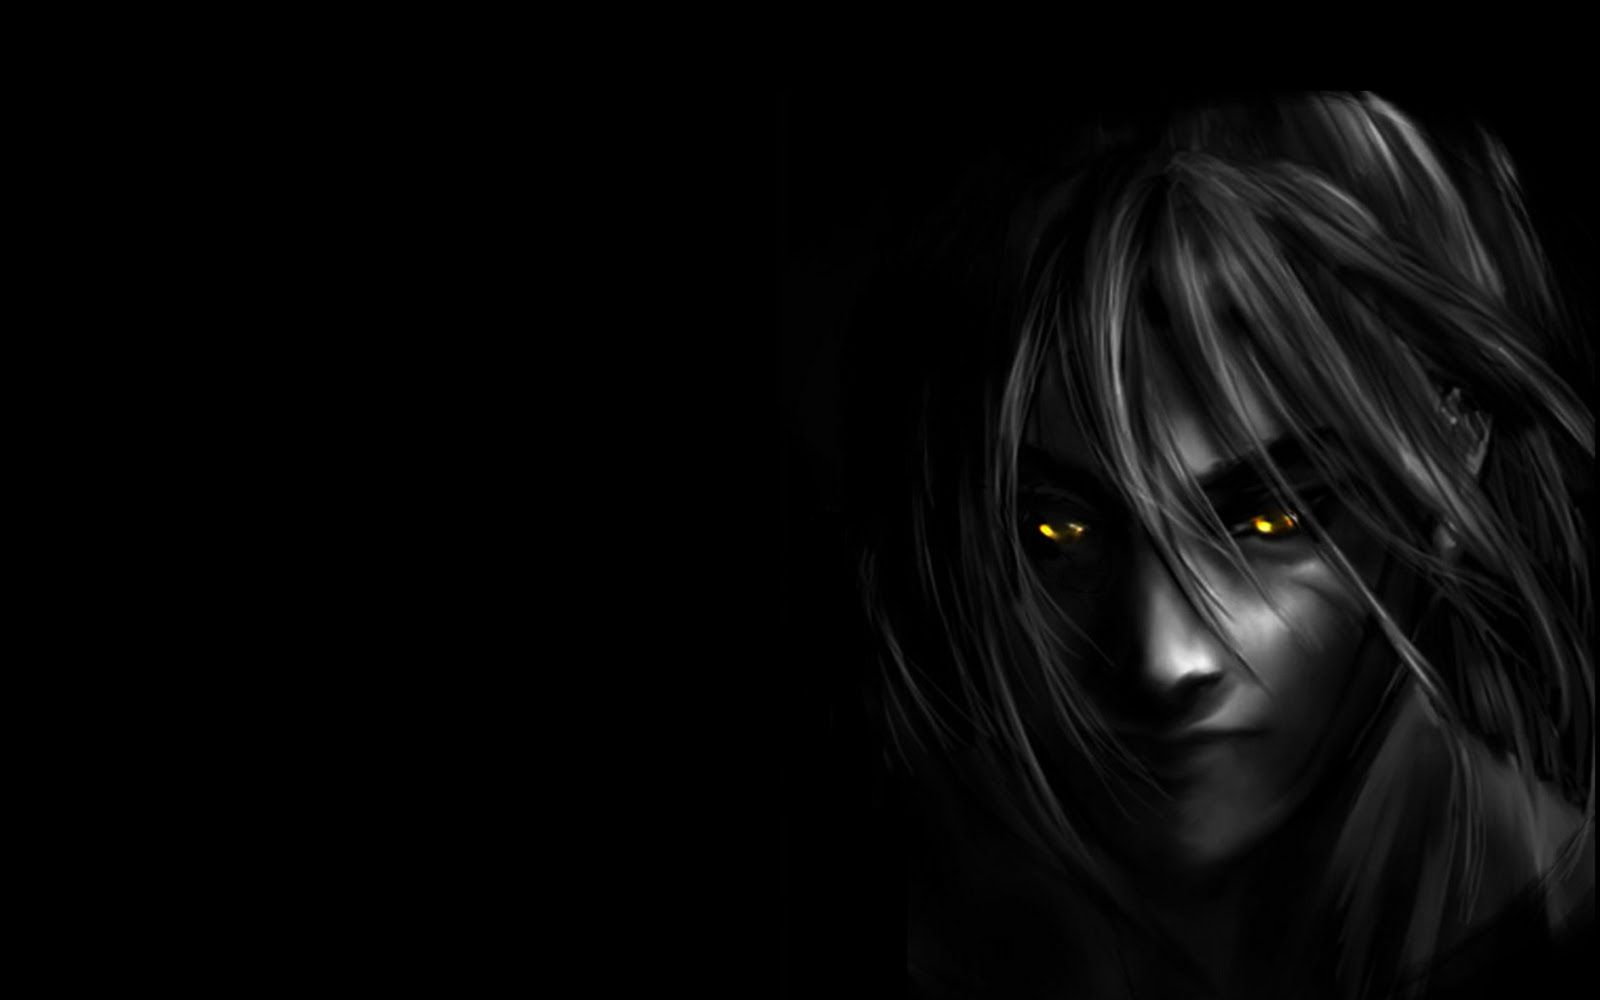 Papersonal Dark Anime Hd Anime Wallpapers Anime Wallpaper